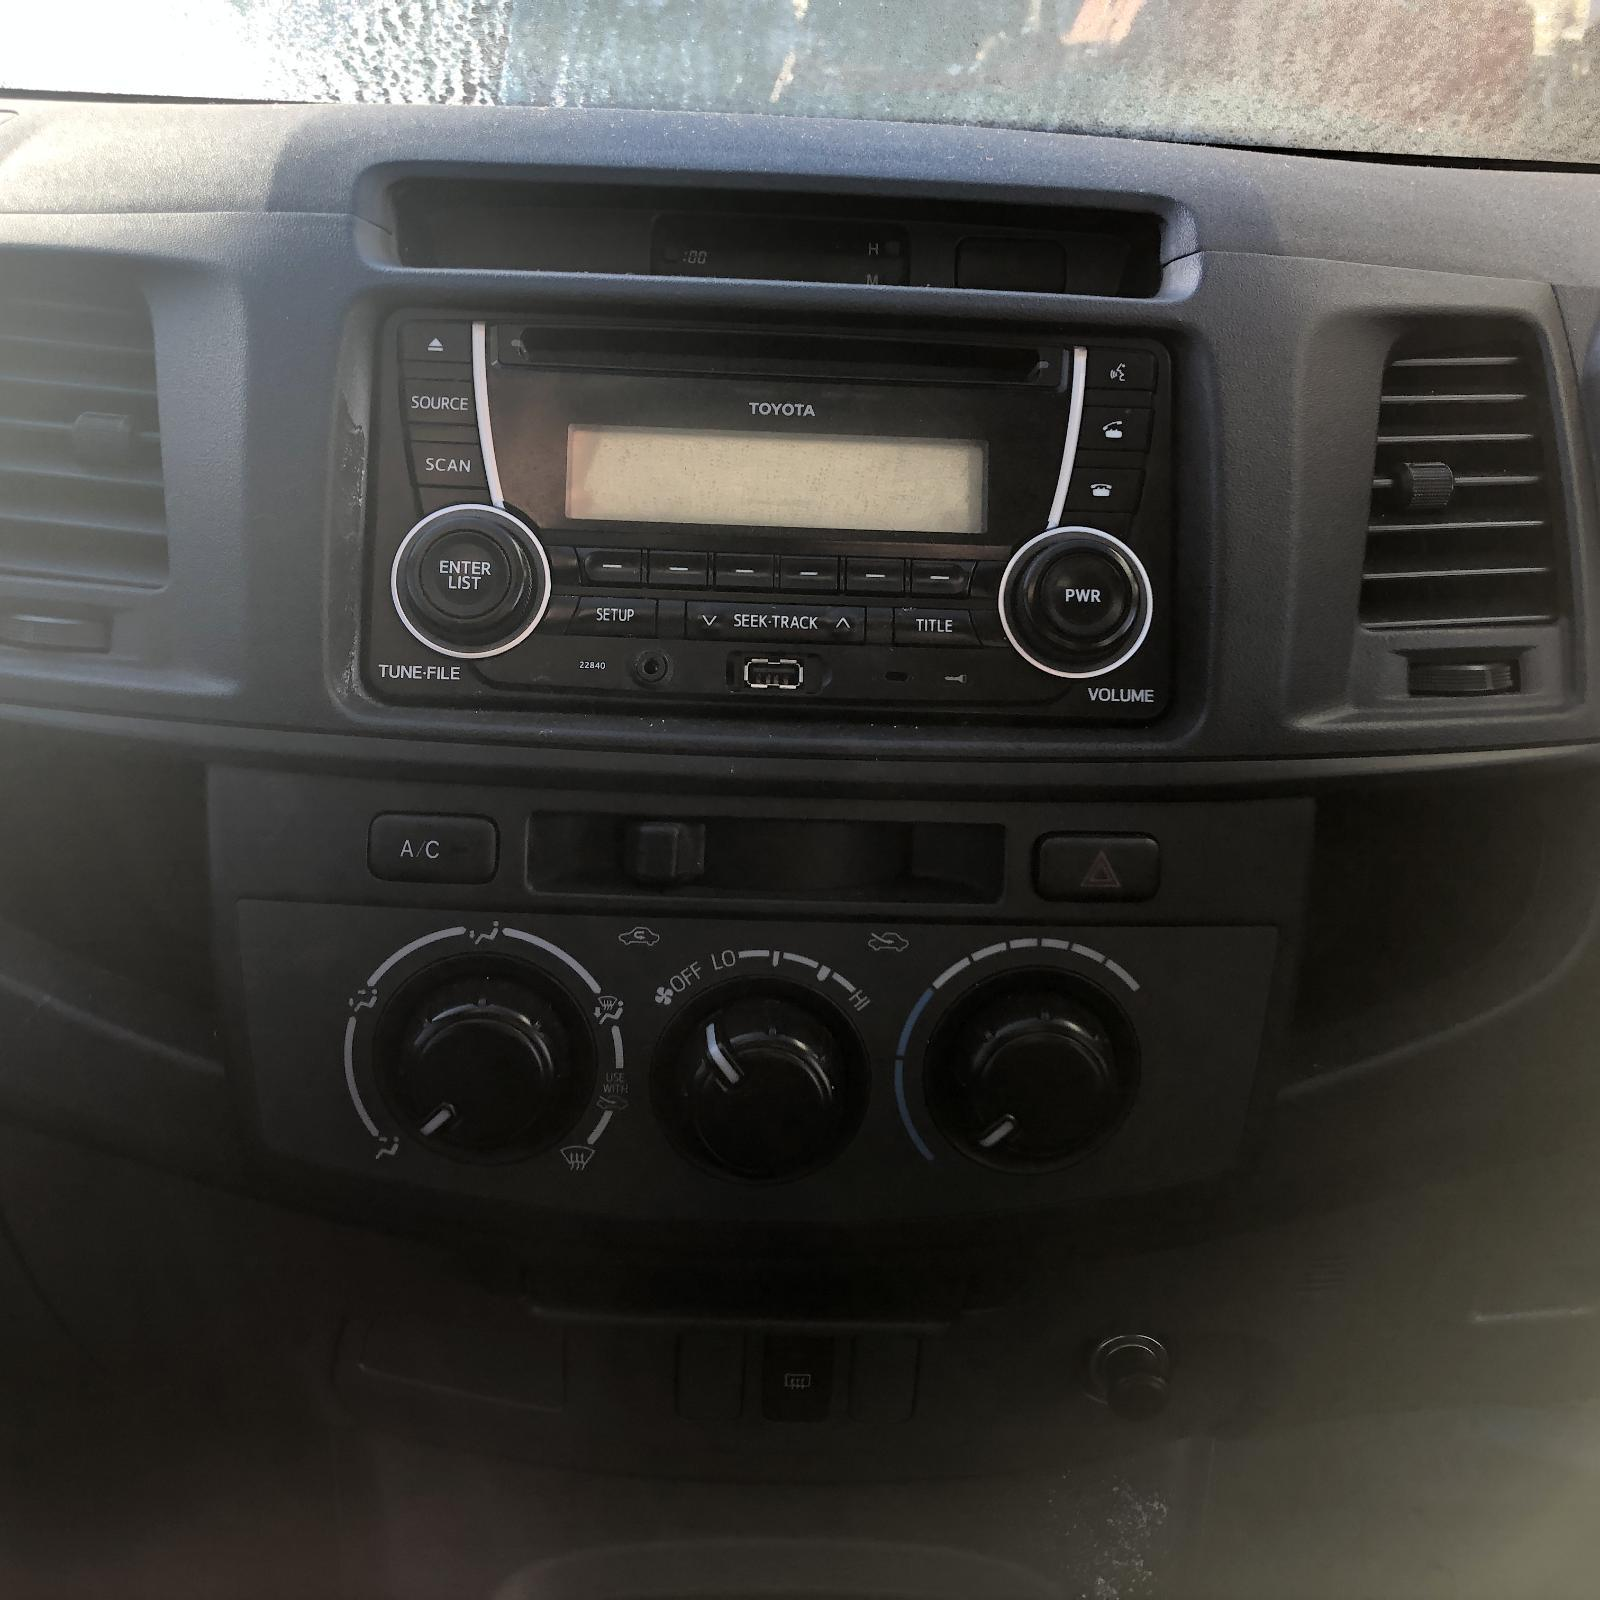 TOYOTA HILUX, Radio/Cd/Dvd/Sat/Tv, CD PLAYER (P/N ON FACE 22815), W/ MP3, BLUETOOTH/USB/SINGLE STACK, 03/05-08/15